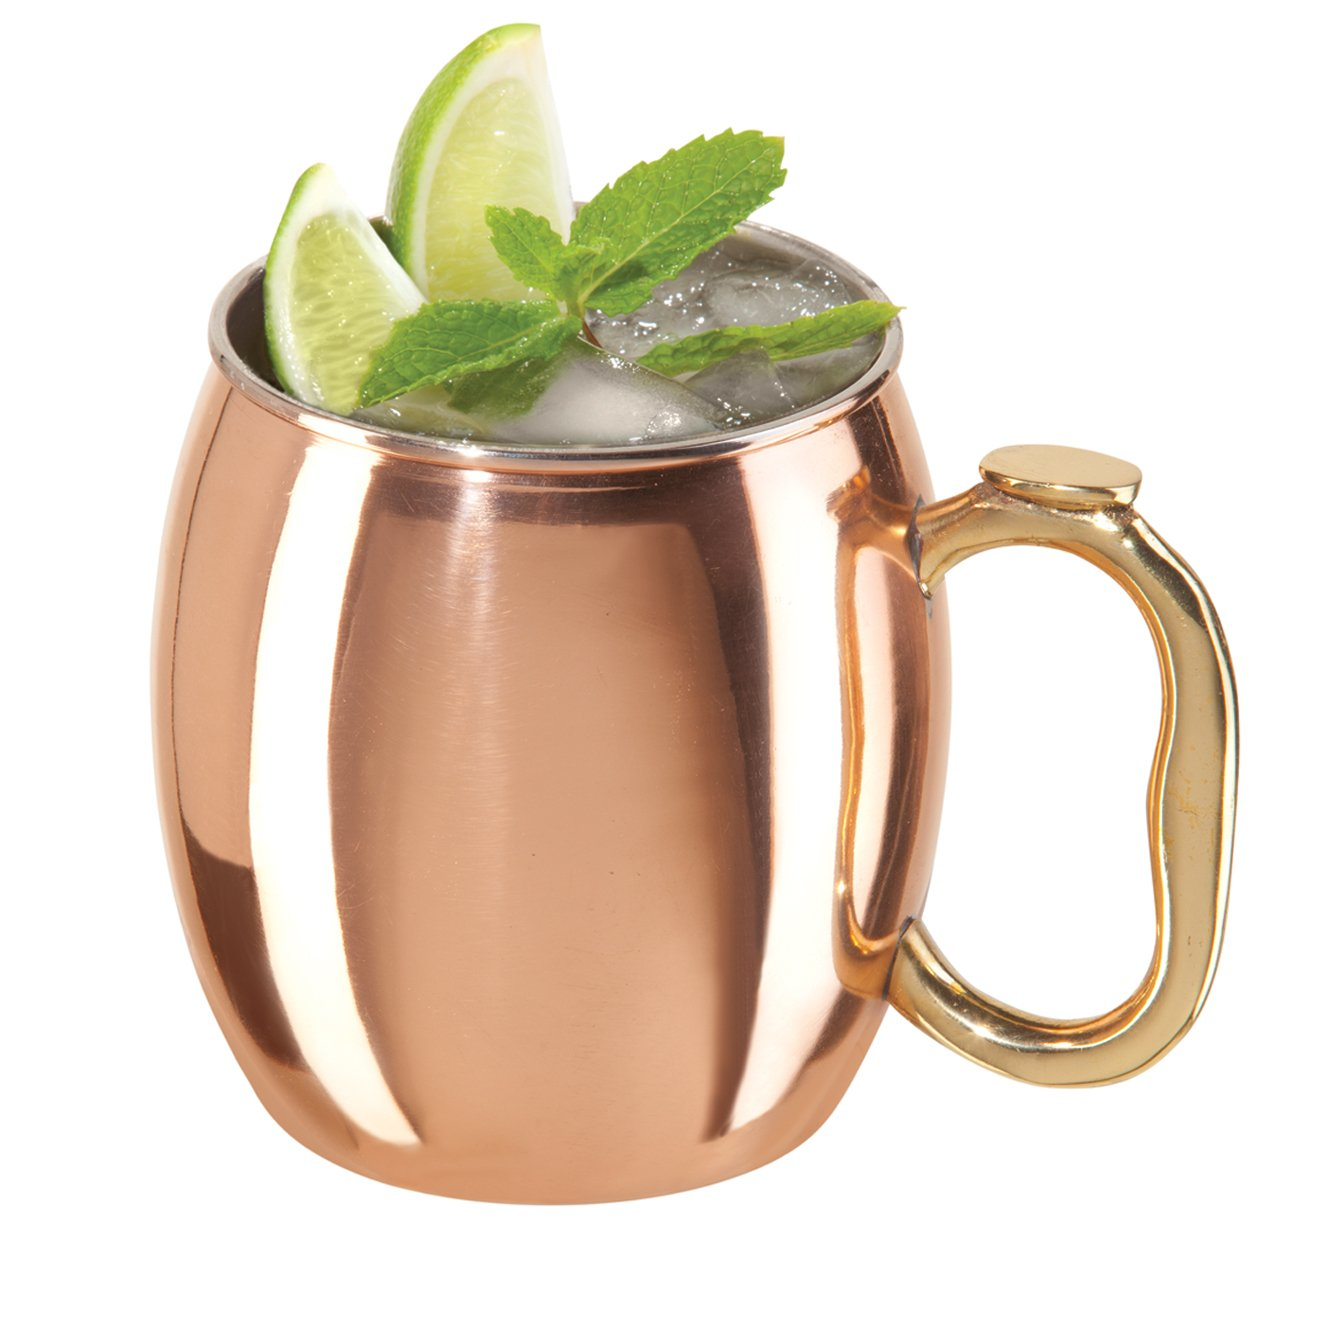 20-Ounce Oggi Moscow Mule Copper Plated Mug with EZ-Grip Handle